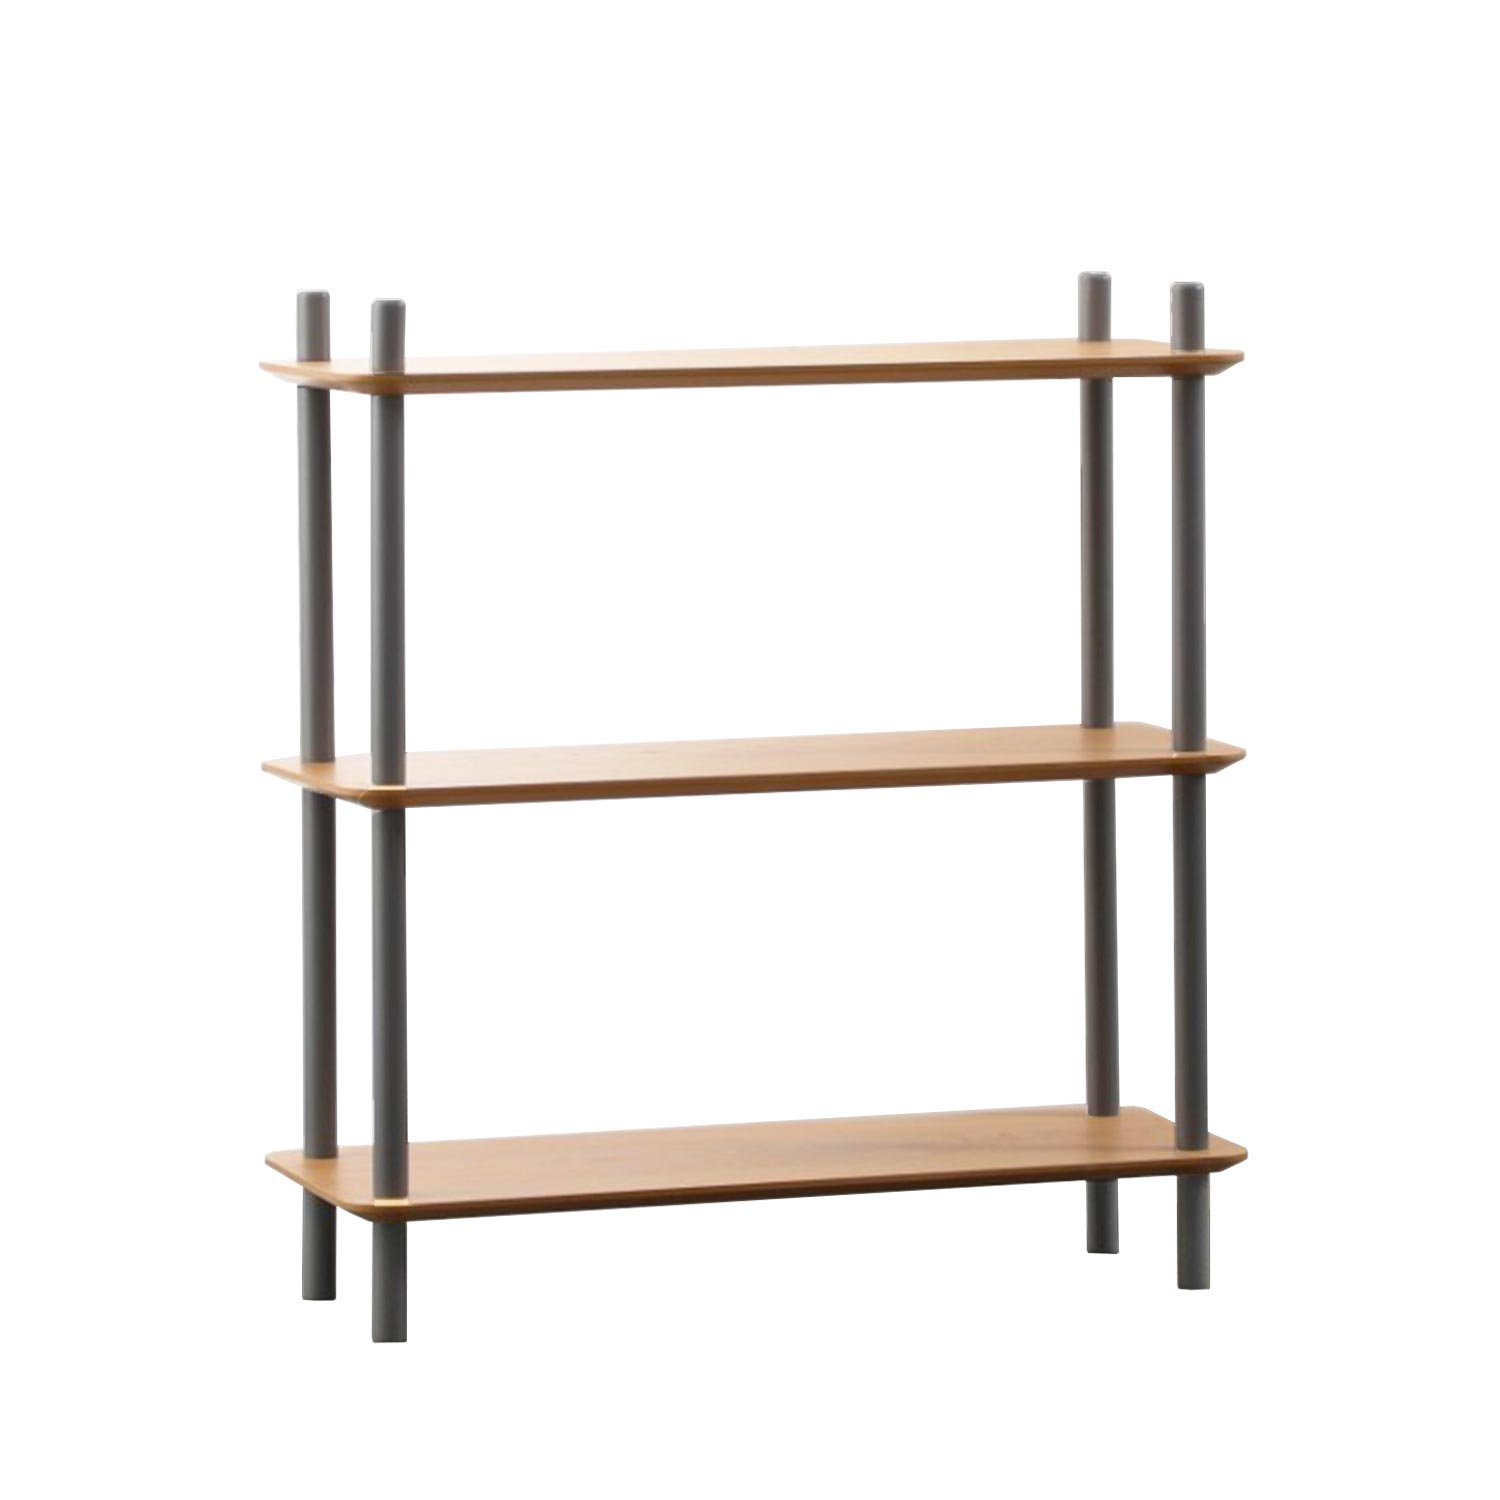 Furniture Source Philippines Search Results Shelving